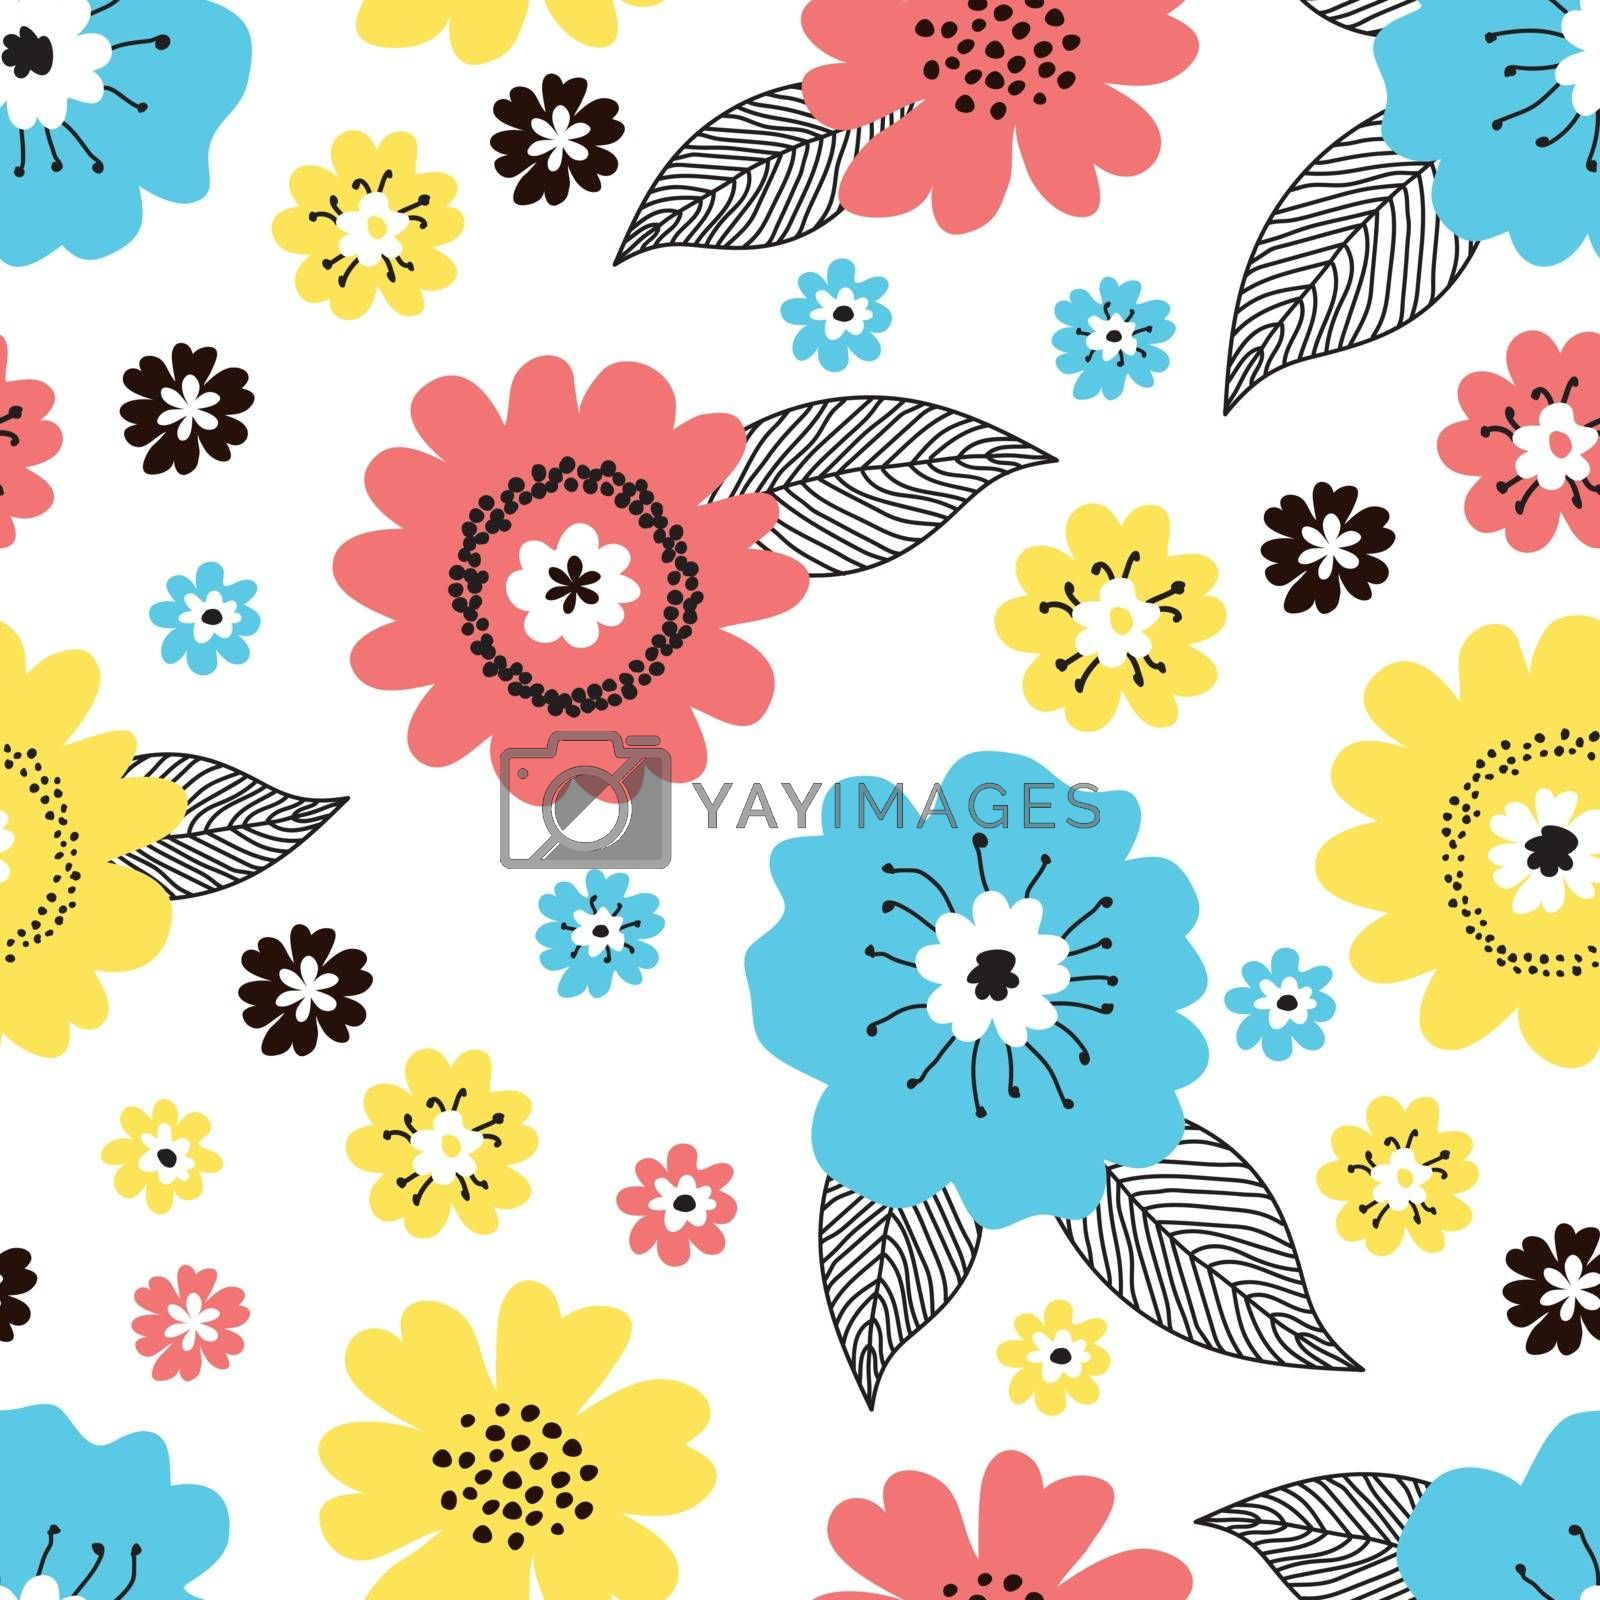 Seamless cute floral pattern with hand drawn various colorful blue, red yellow spring flowers with black leaves on white background. Vintage retro style vector design for fabric, wrapping paper, cover.